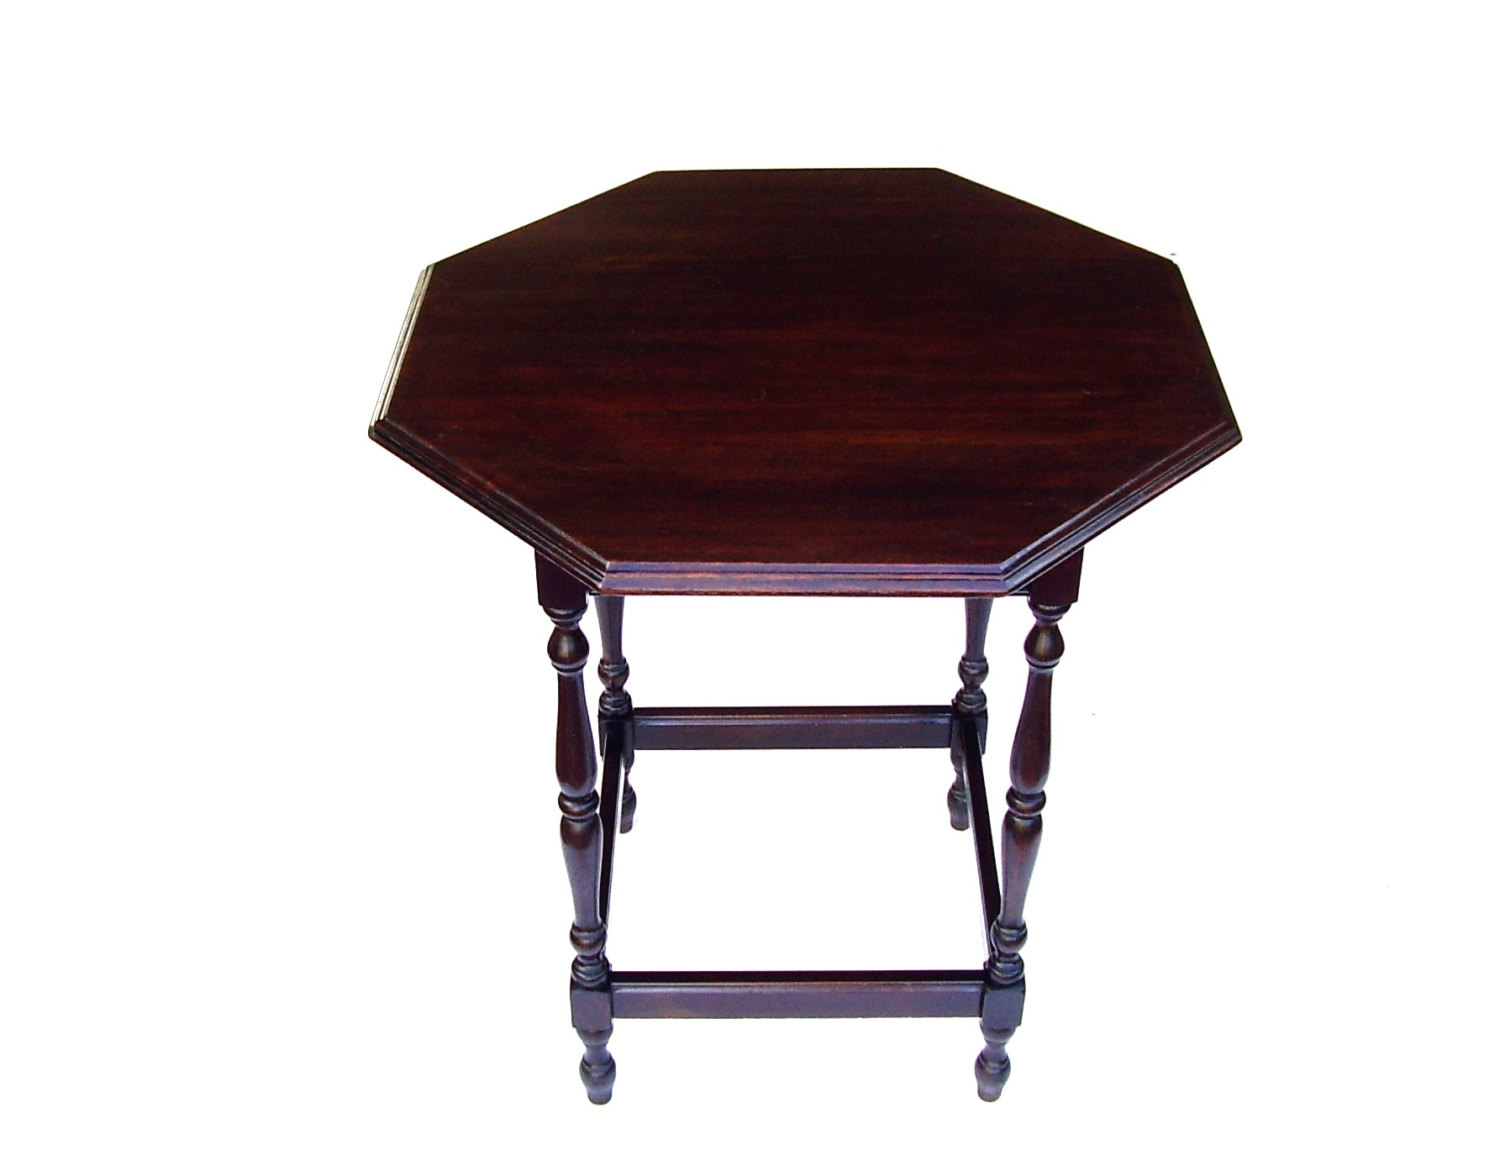 antique parlor table vintage wood tables side etsy fullxfull kdnn spindle accent piece nesting set cymbal boom stand target furniture coffee oriental desk lamp chairside pottery